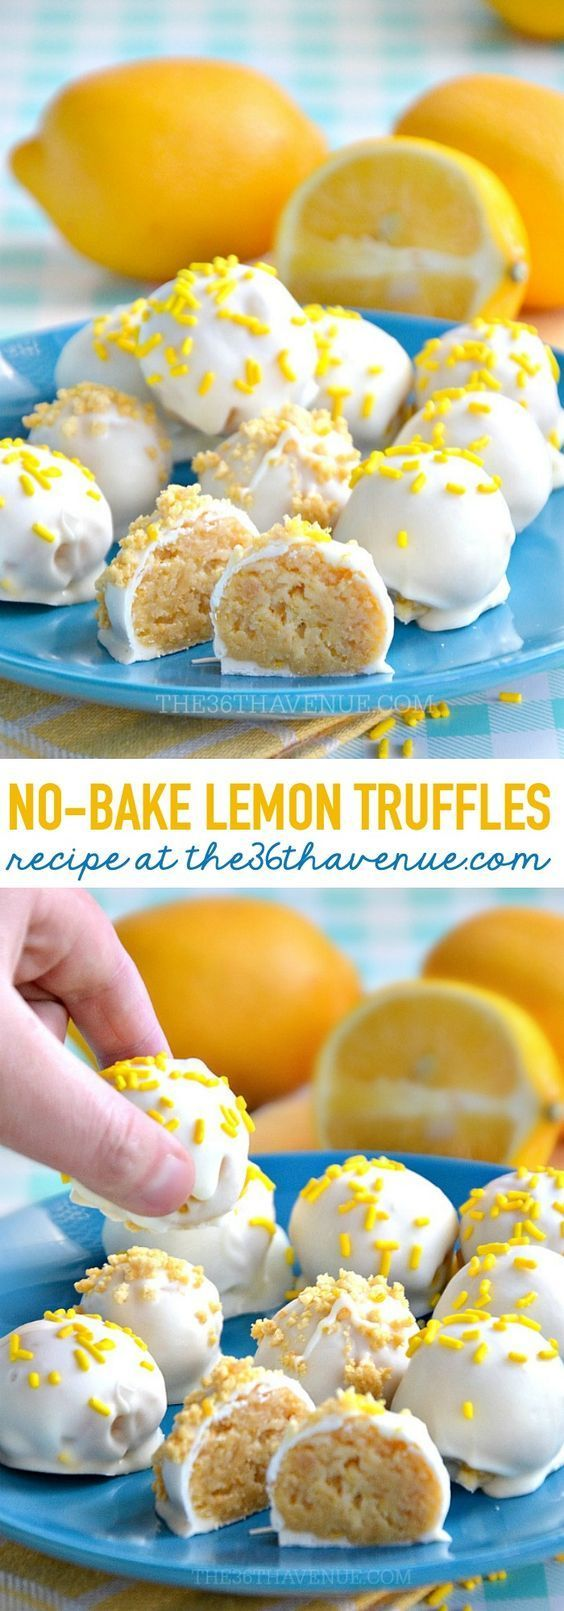 Lemon Truffles by the36thavenue.com